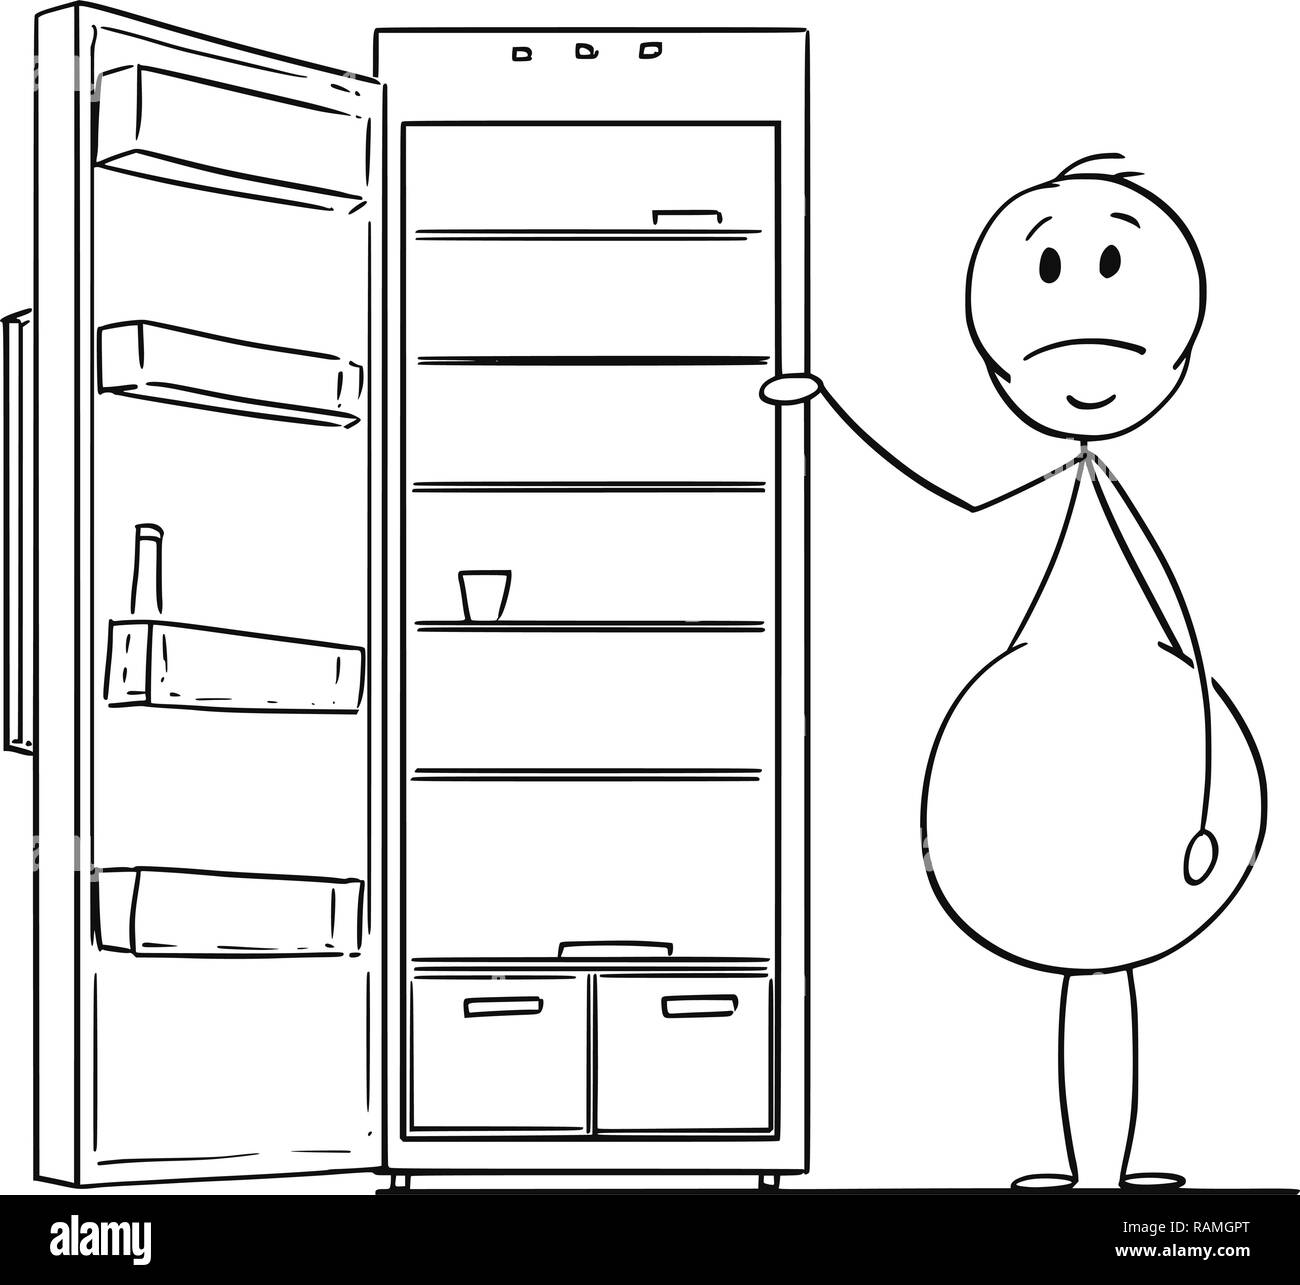 Cartoon of Hungry Obese or Fat Man and Empty Fridge or Refrigerator Stock Vector